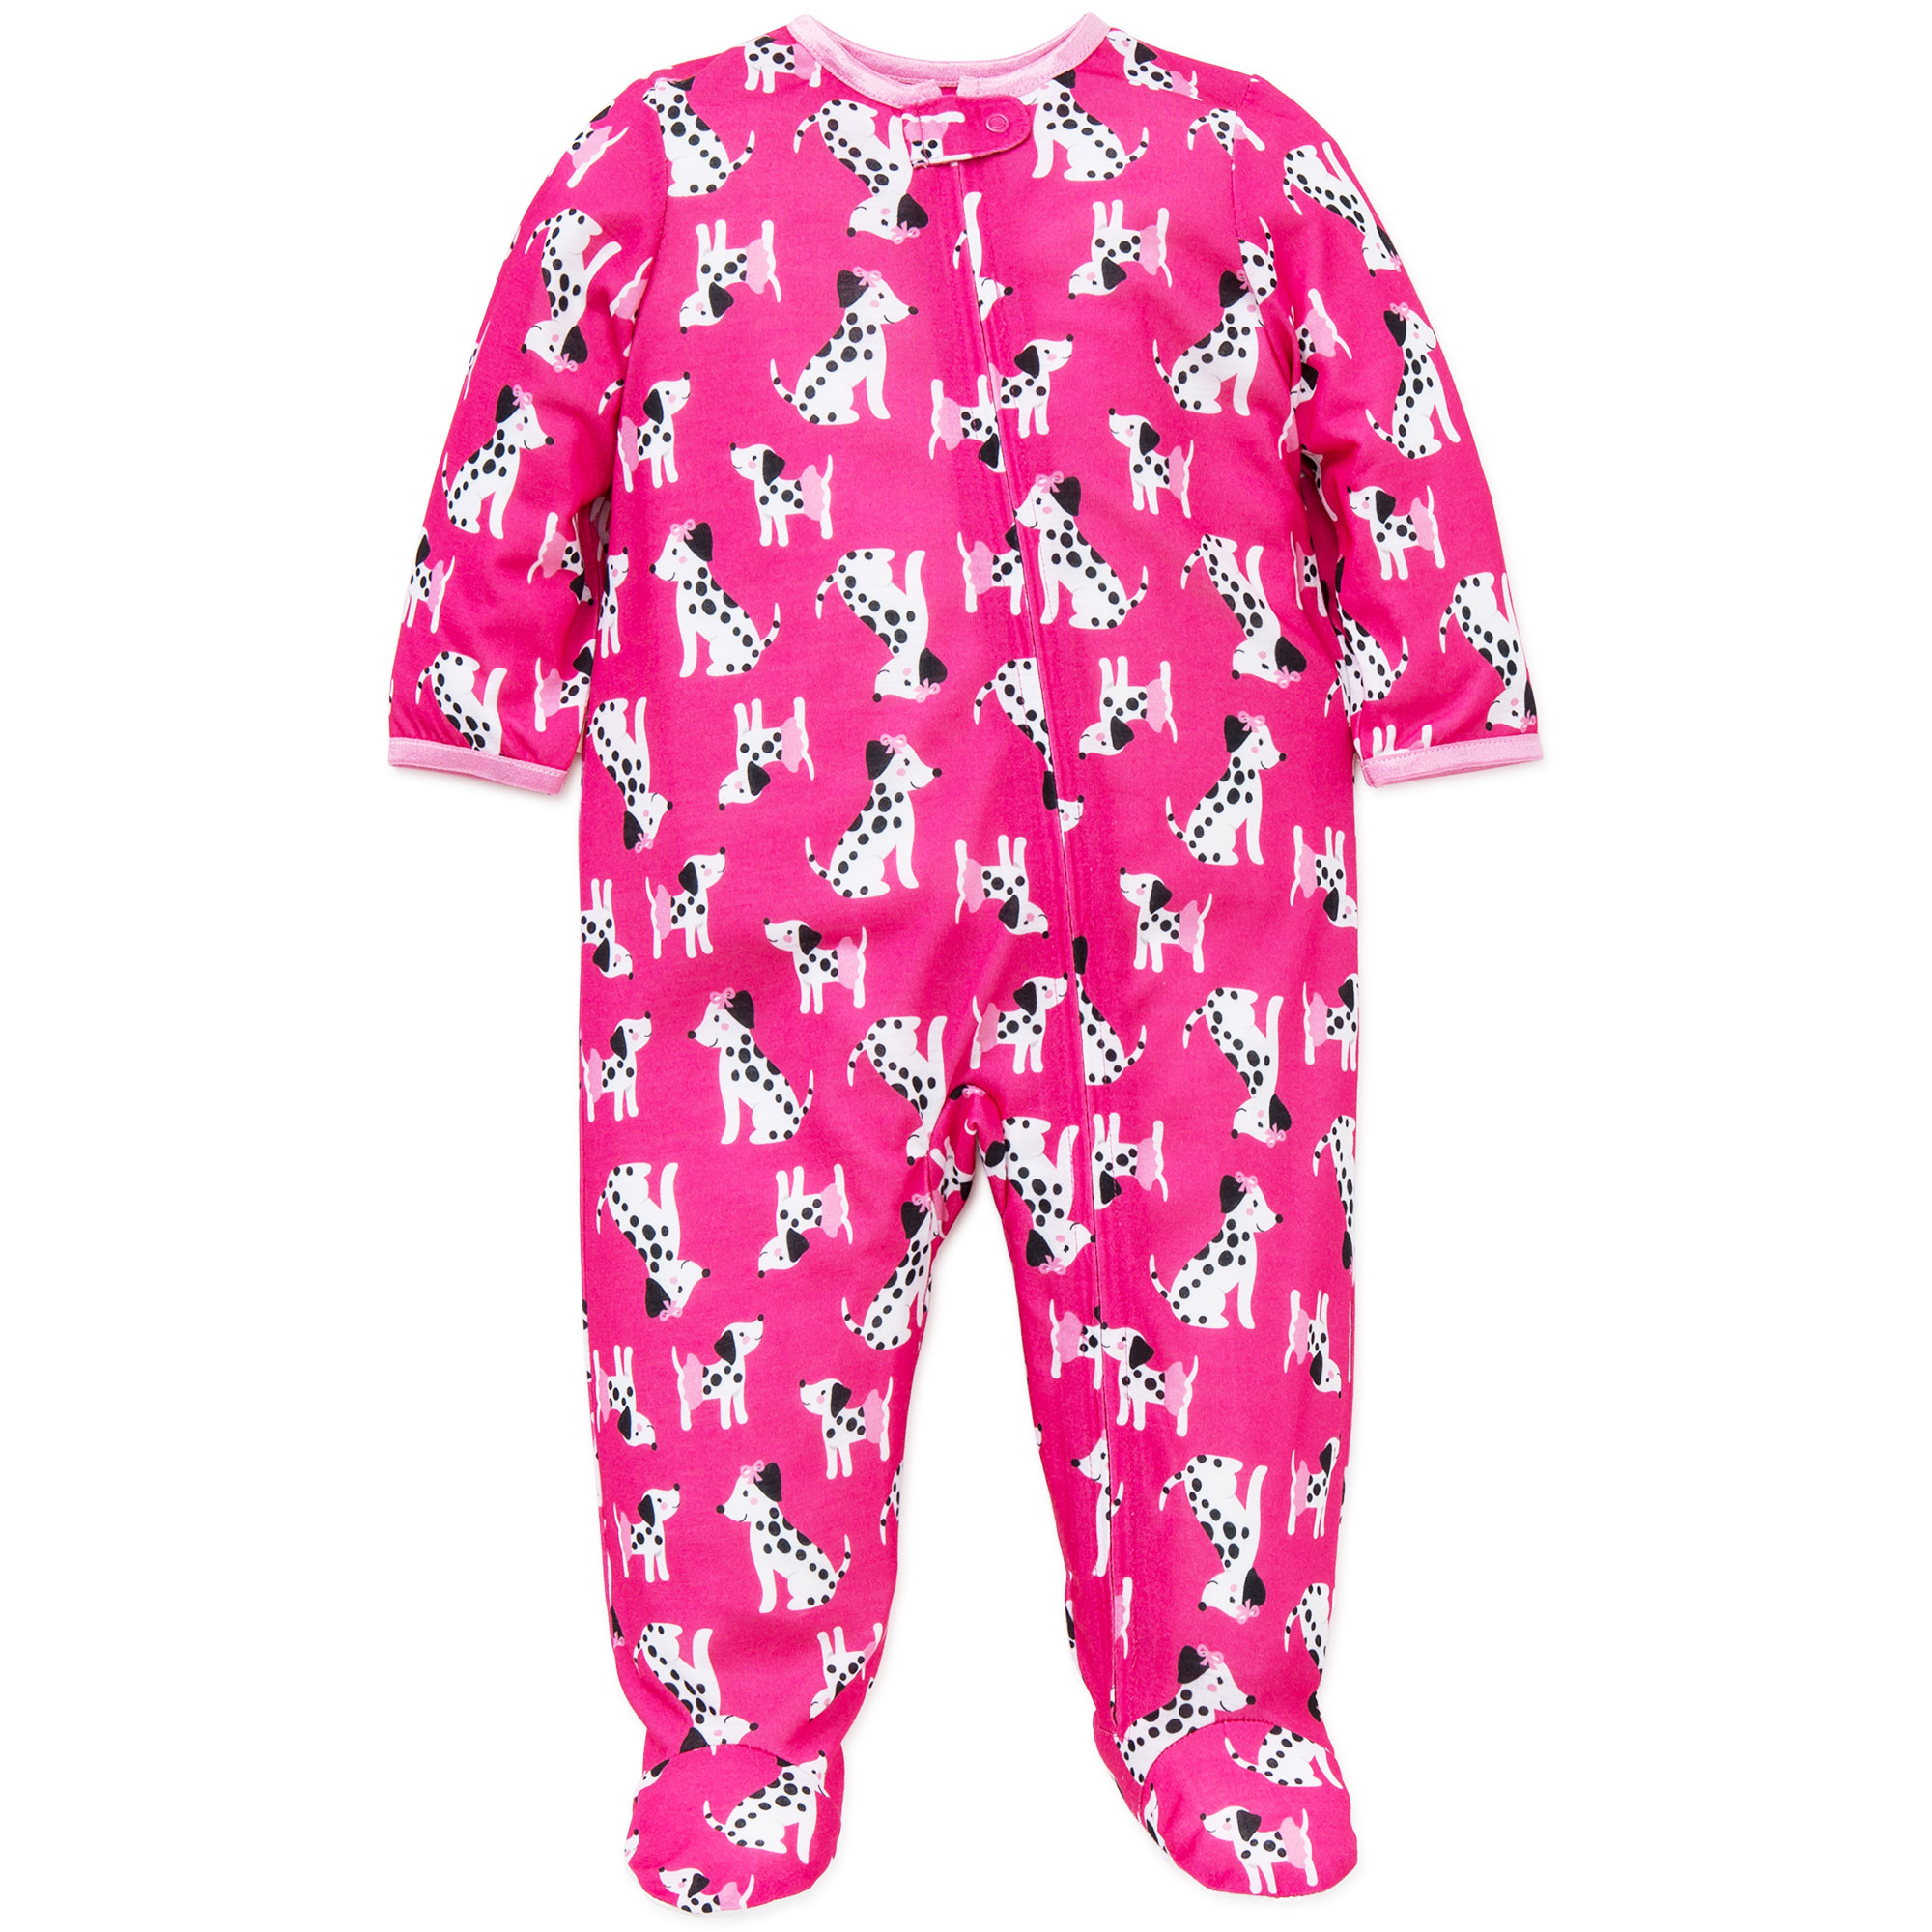 0568a7616 Little Me - Little Me Baby Girls Dalmatian Soft Zip Footie Pajamas ...